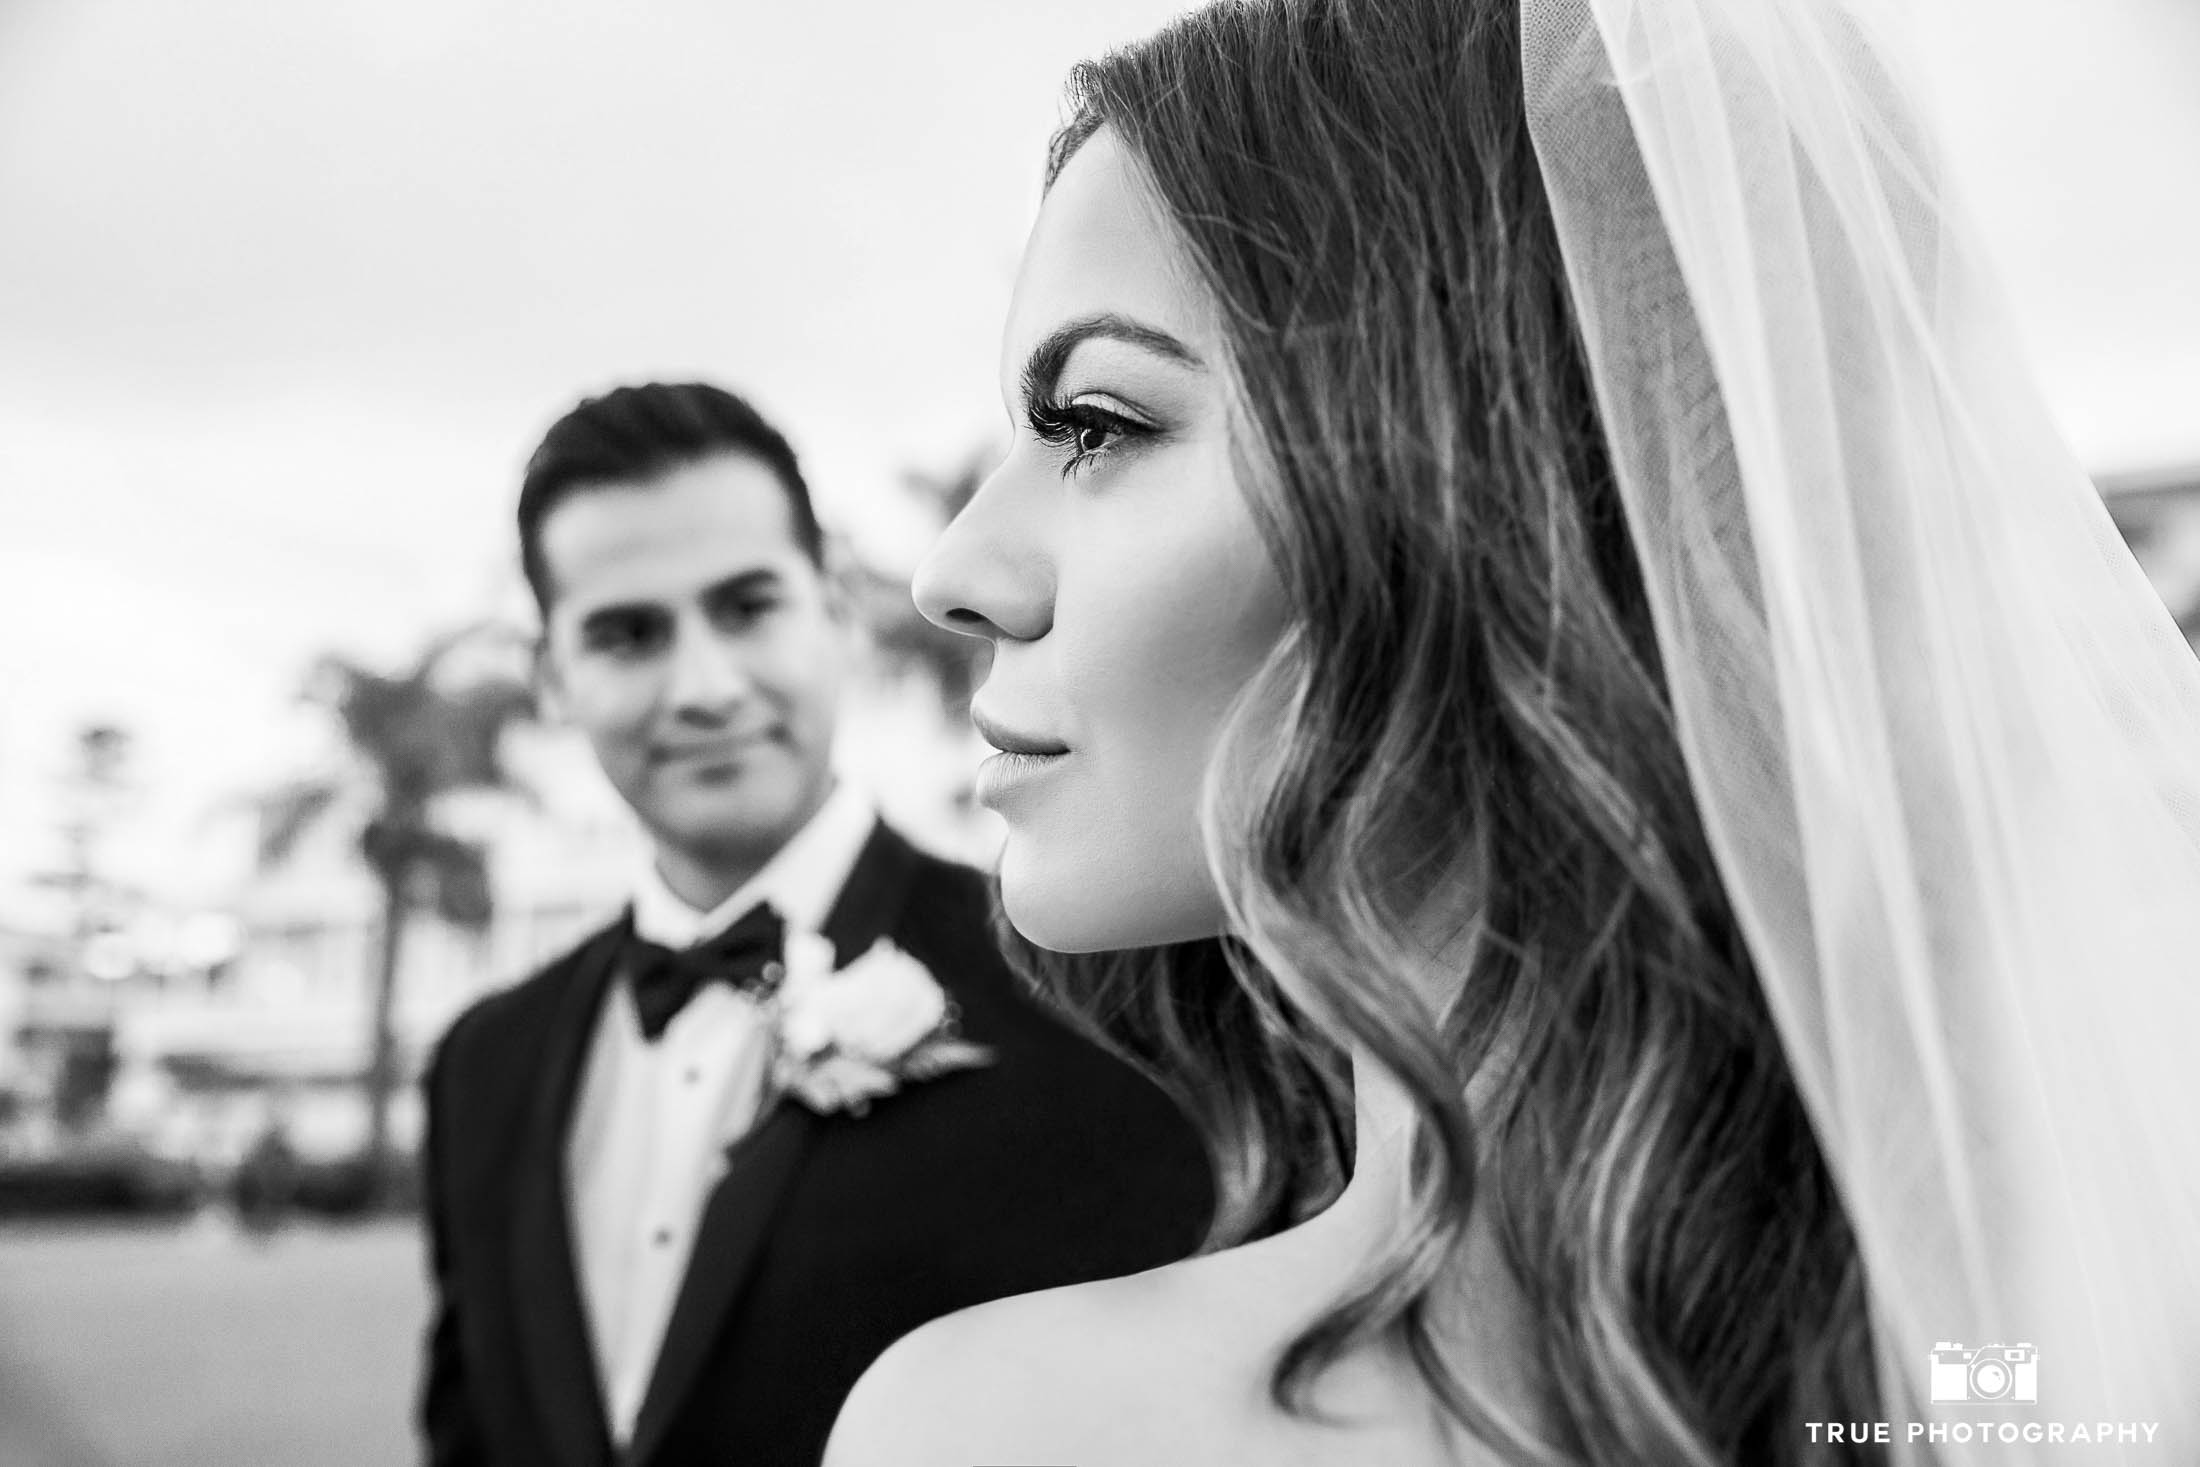 Side profile of Bride looking away as Groom looks at her from background